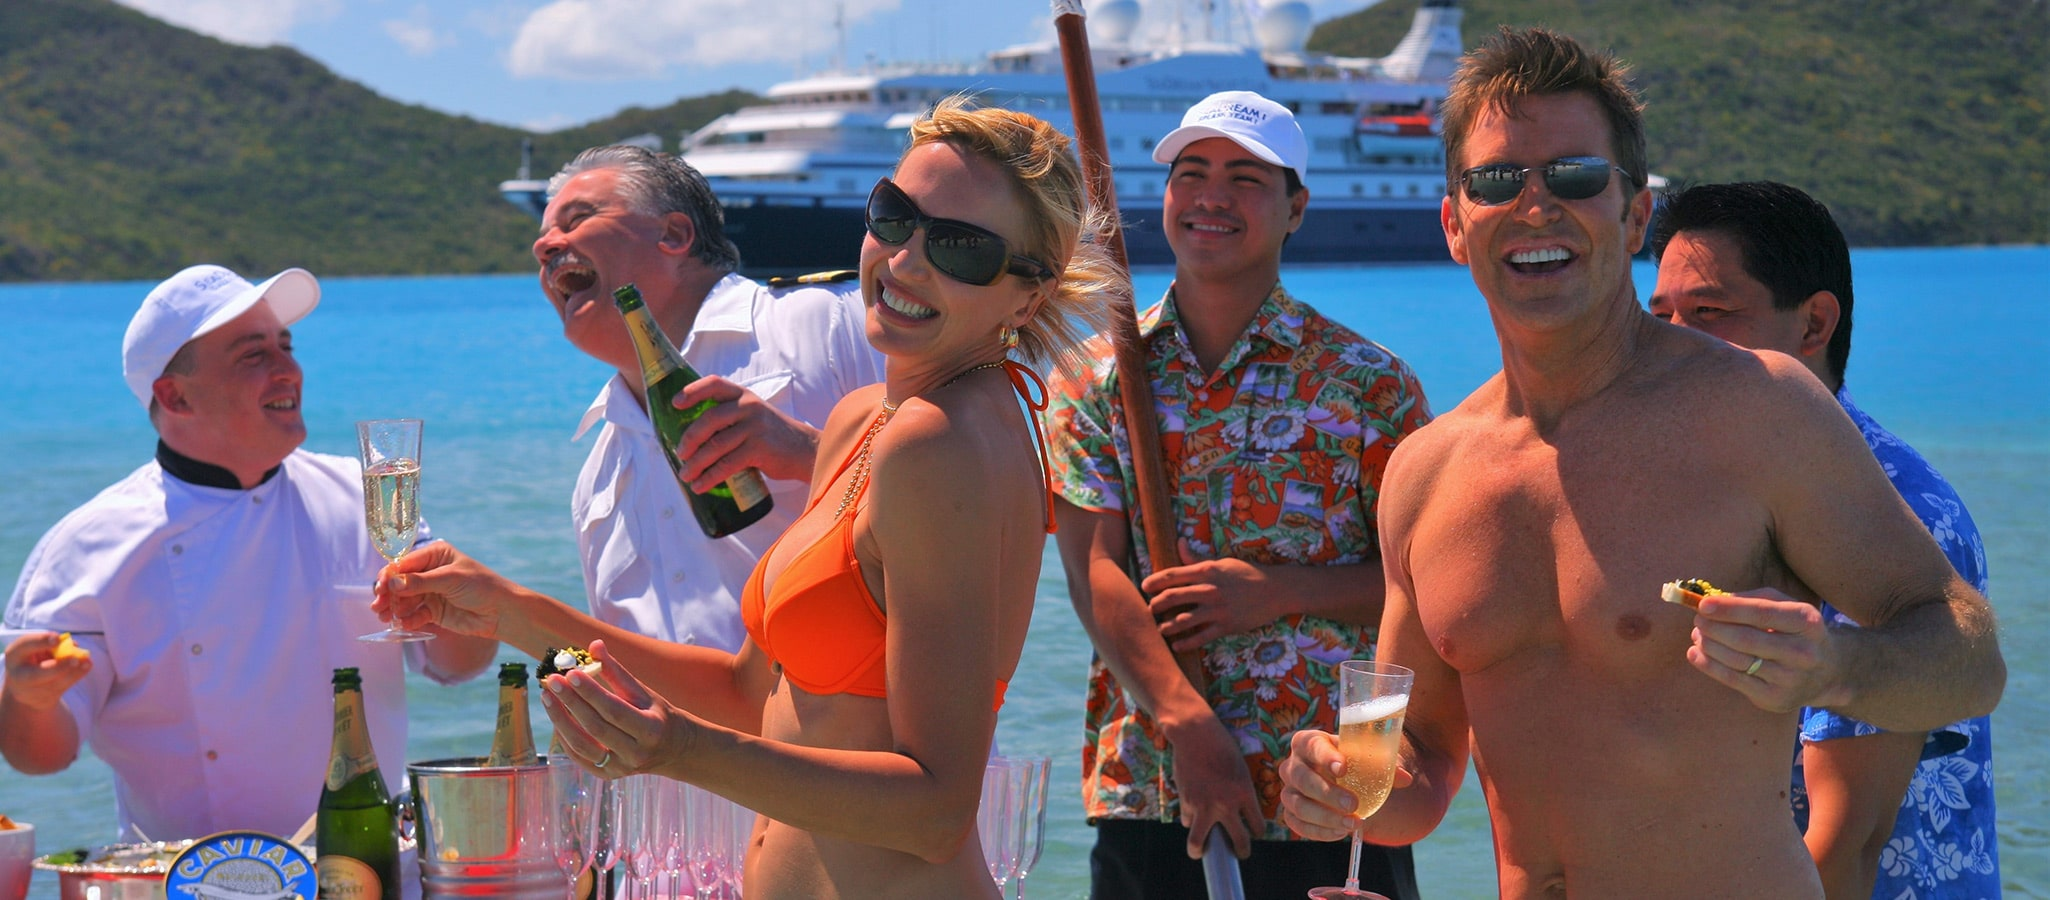 An extraordinary event: champagne & caviar splash on a Caribbean beach.